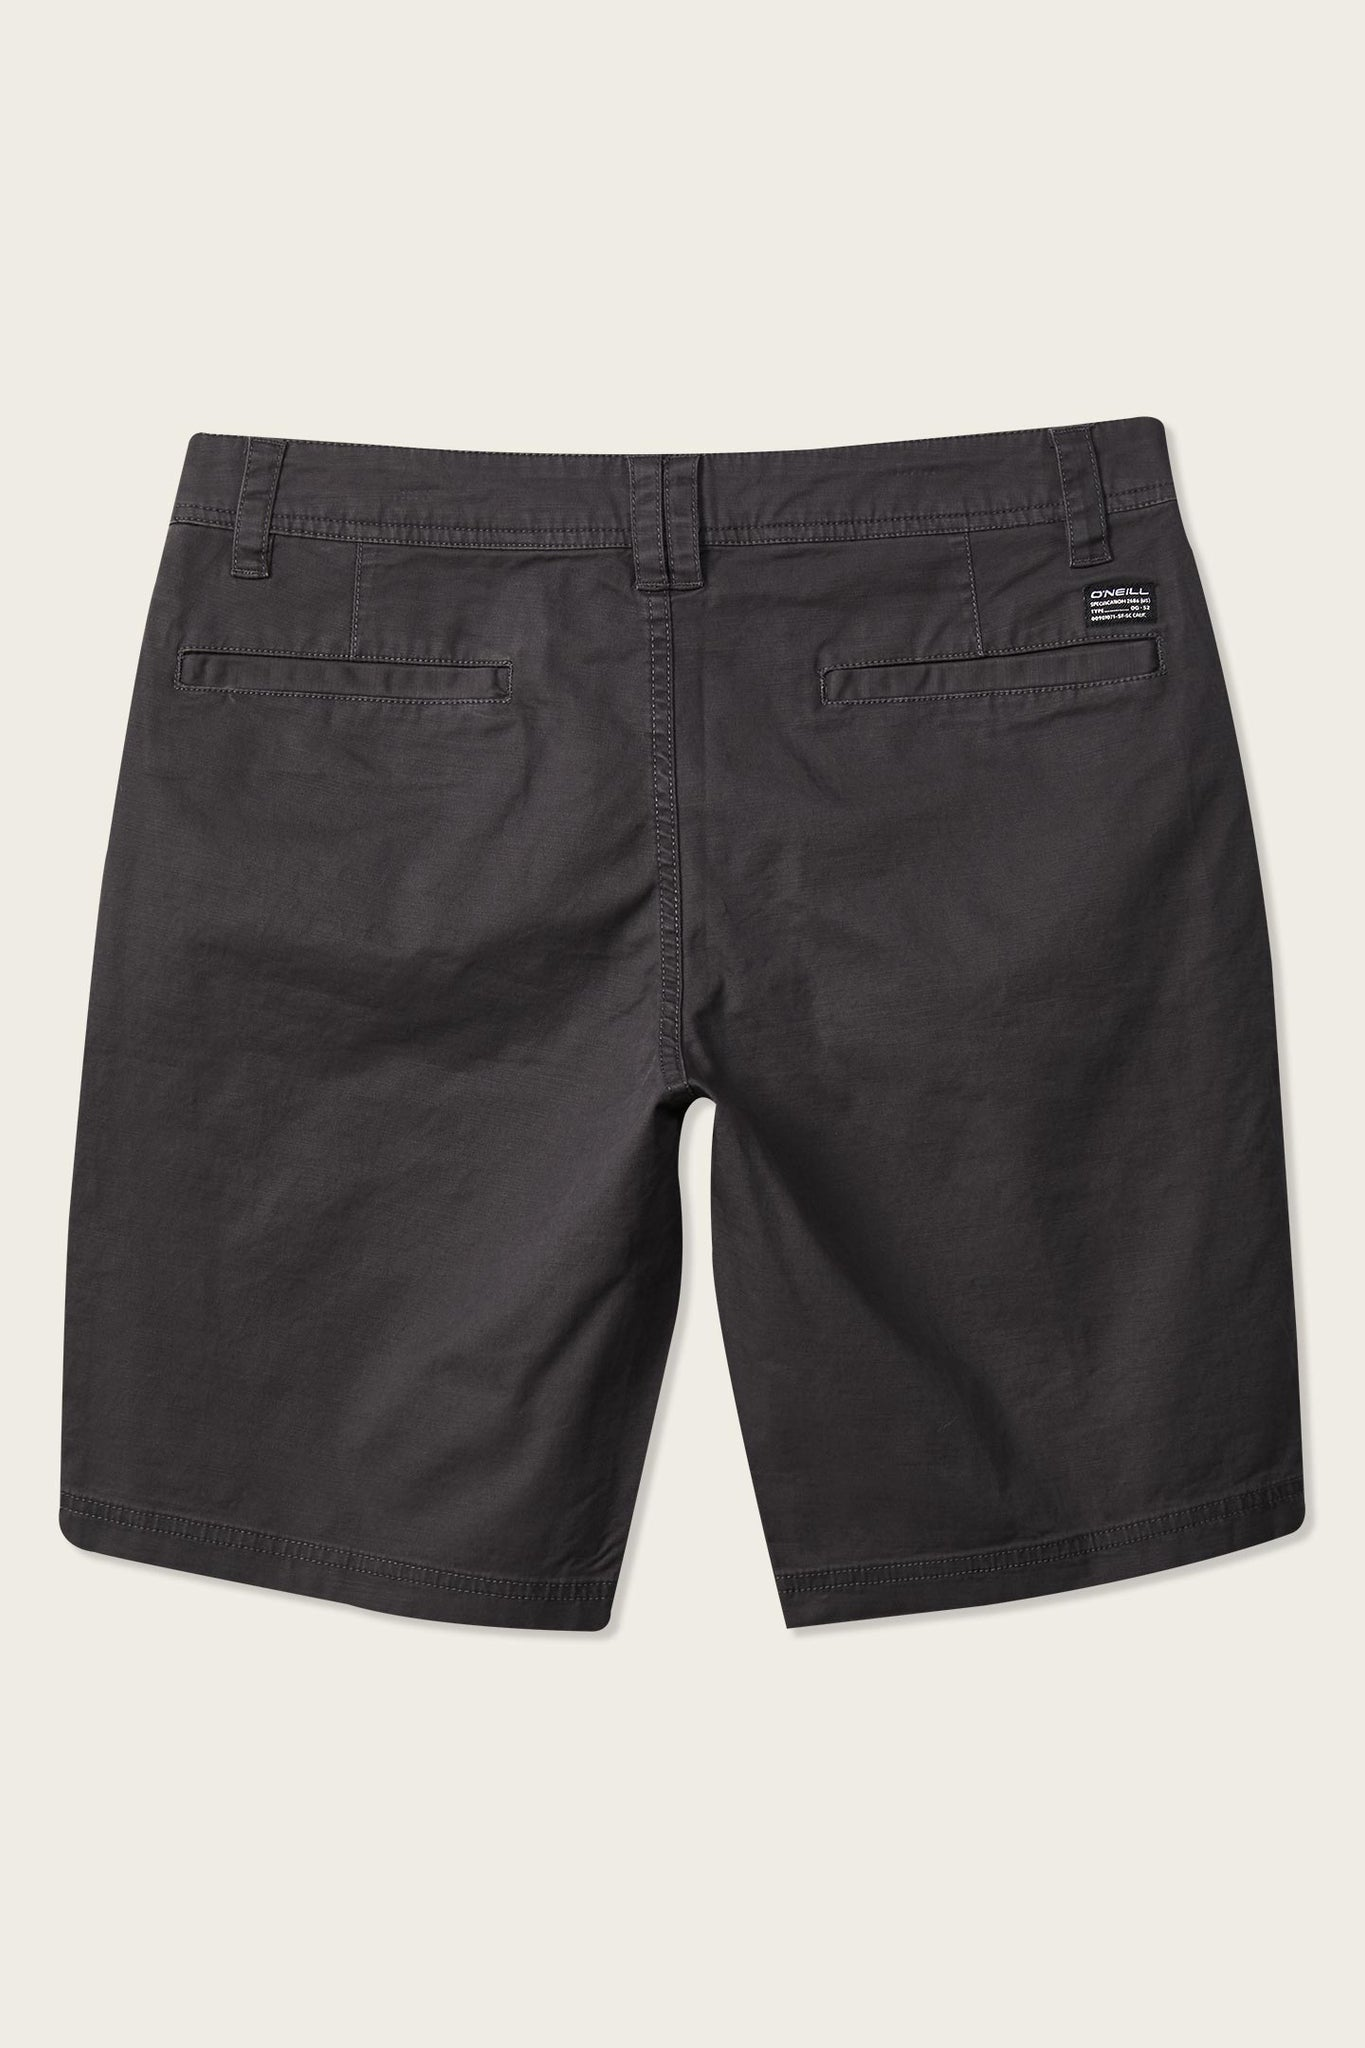 Jay Stretch Chino Shorts - Asphalt | O'Neill